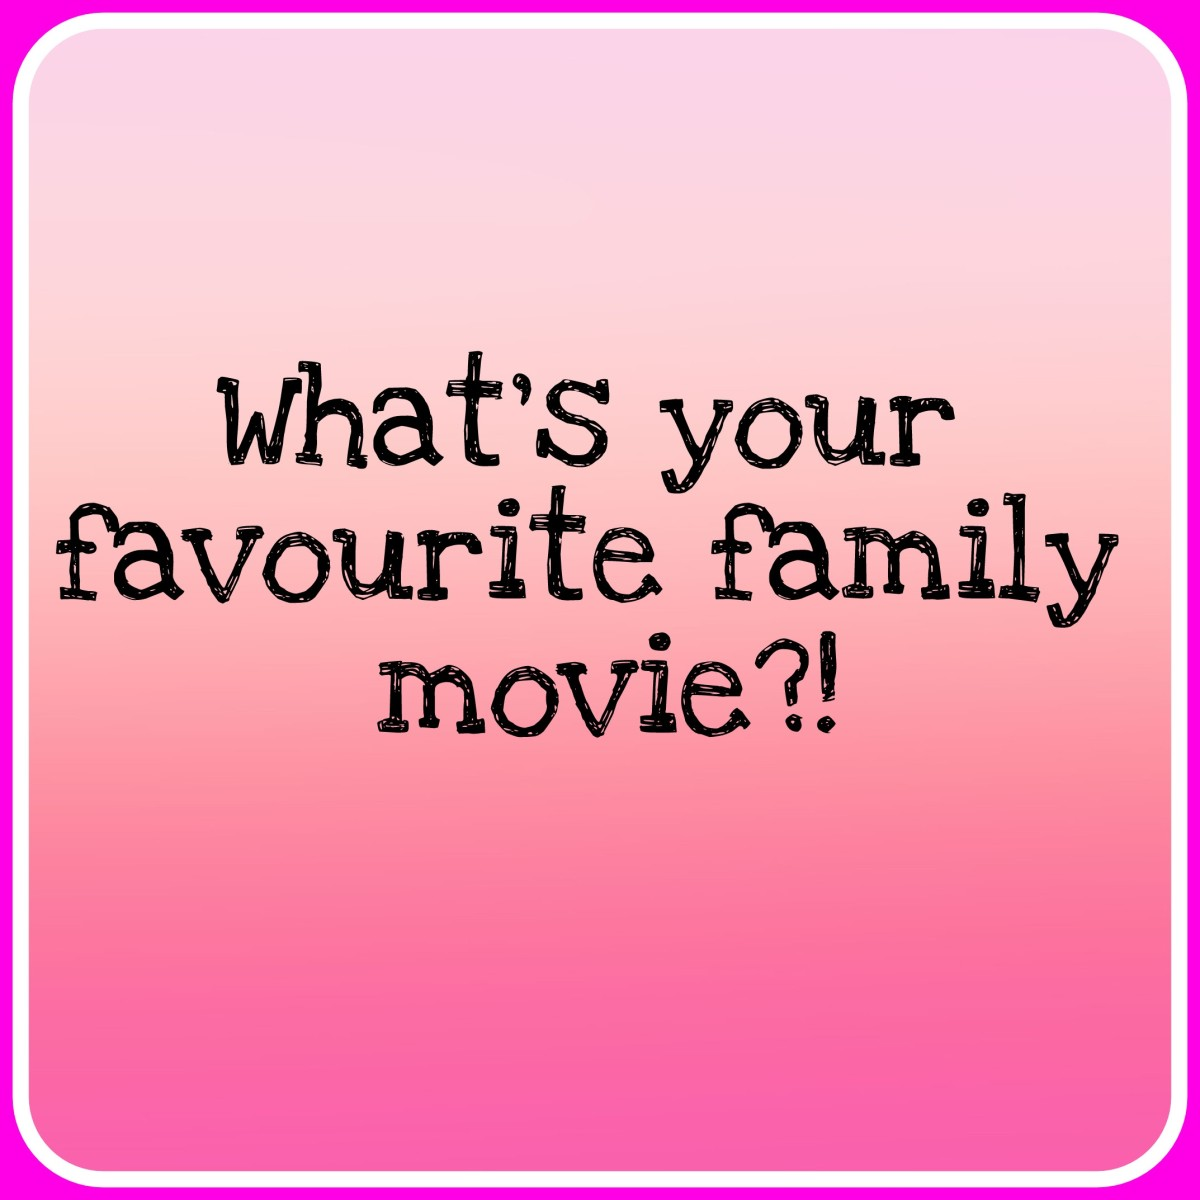 What's your favouite family movie?!